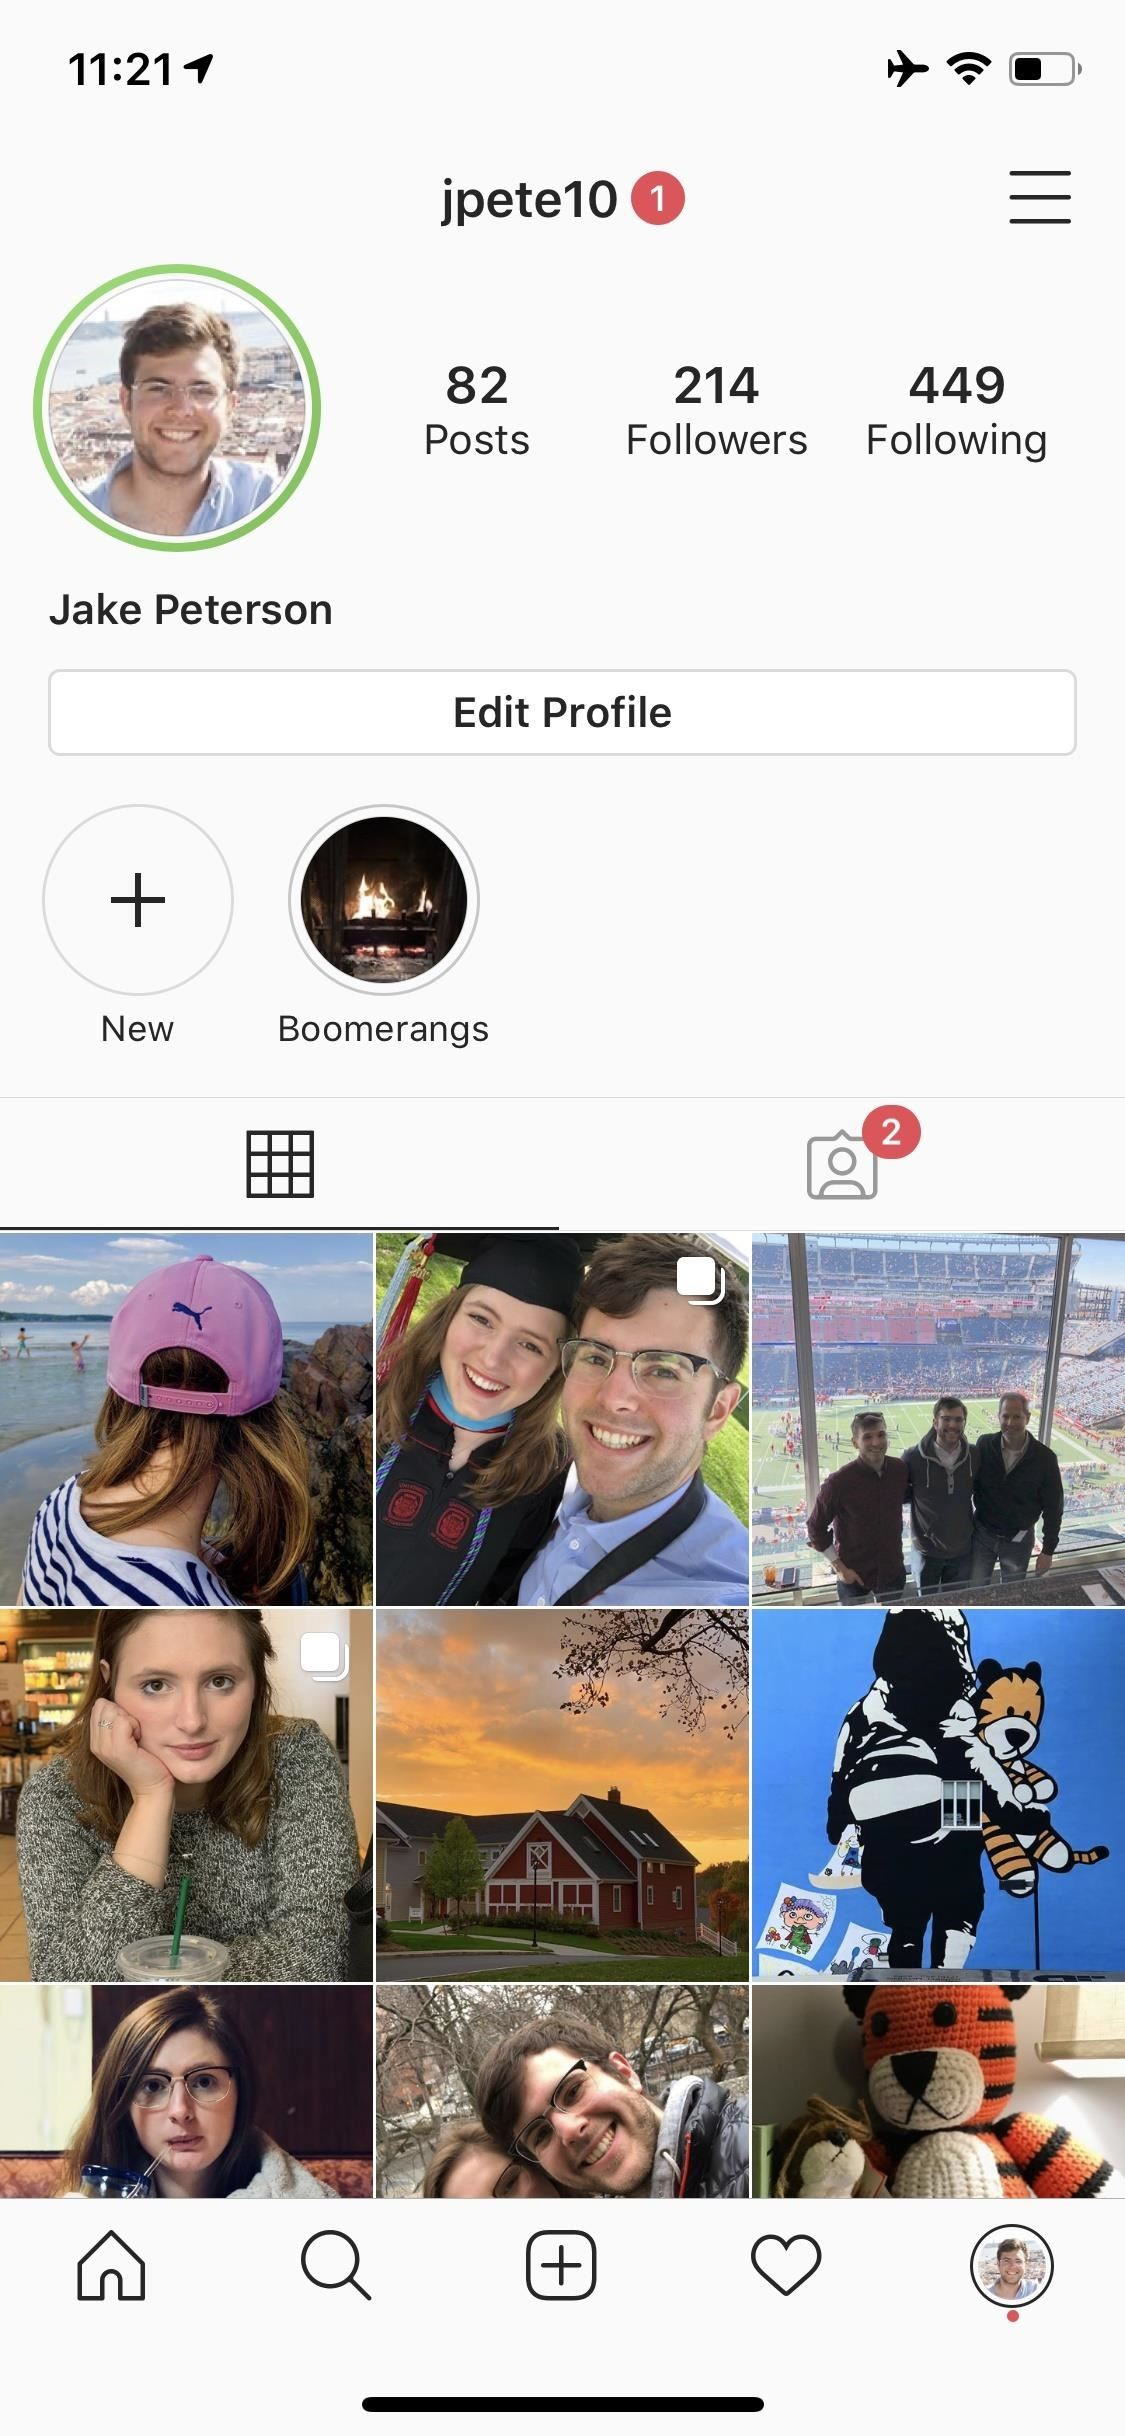 Instagram 101: How to Share Posts & Stories to All Your Close Friends' Feeds Only